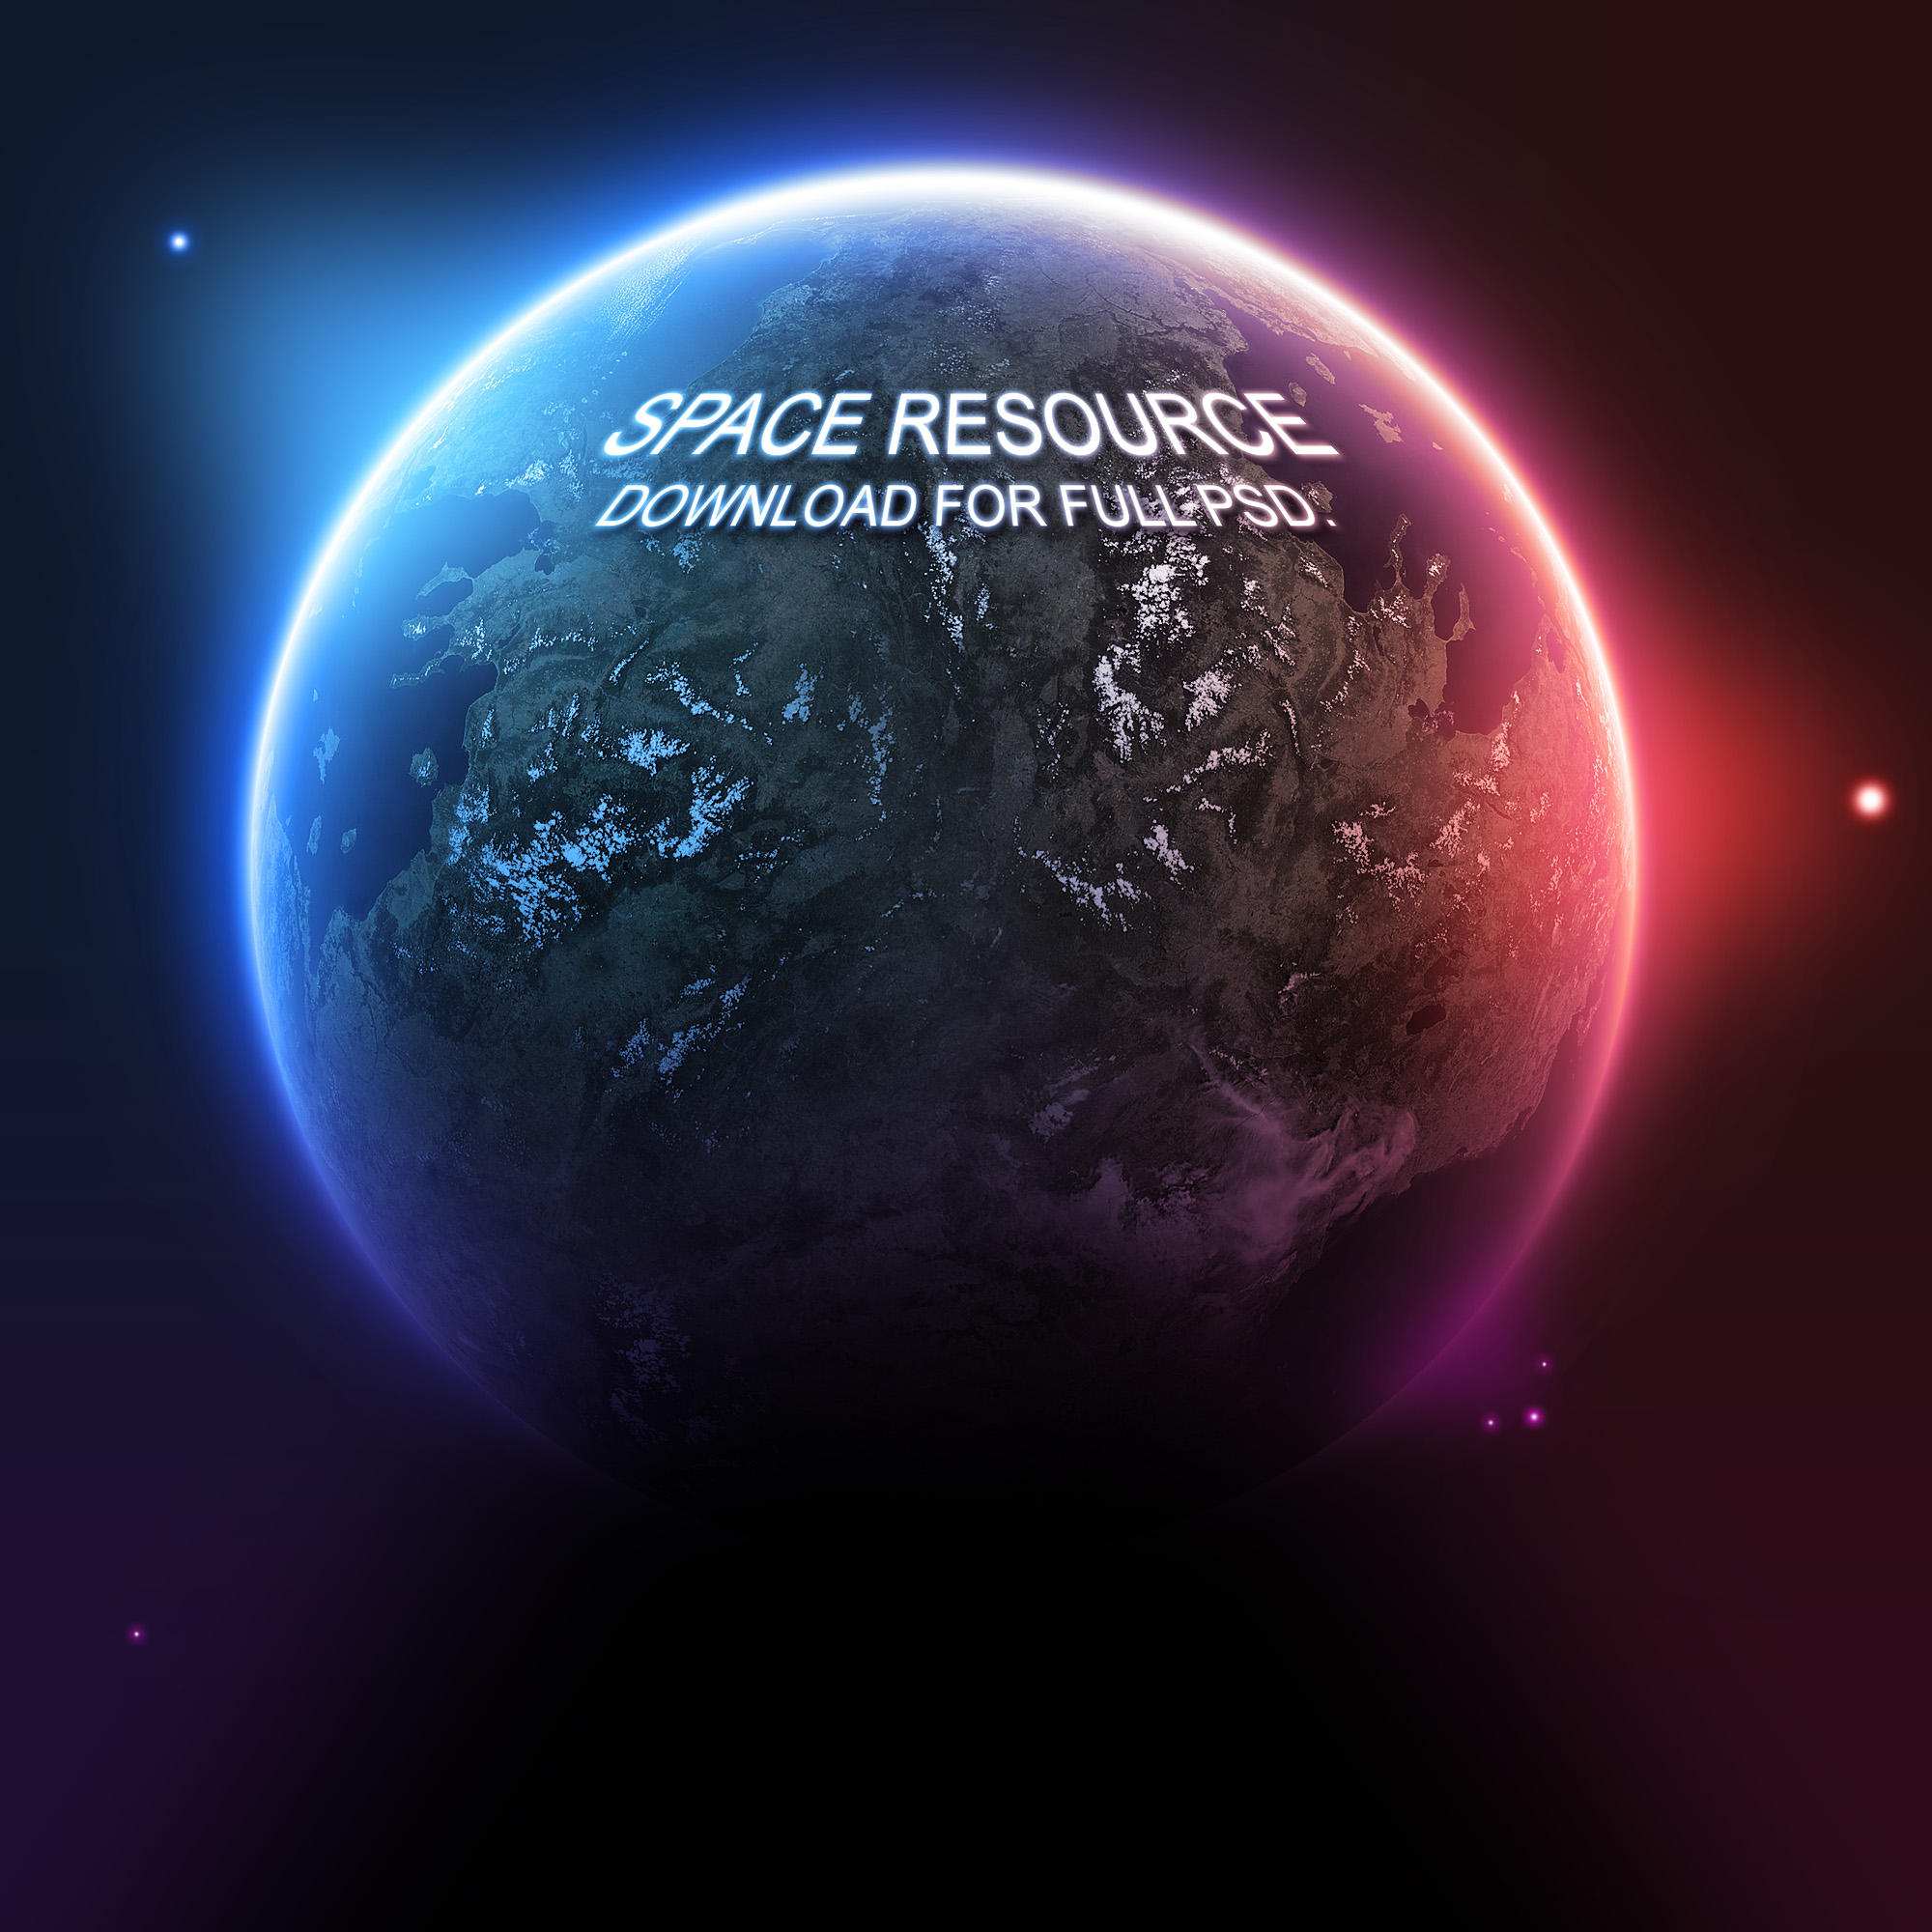 Space Resource by Superiorgamer